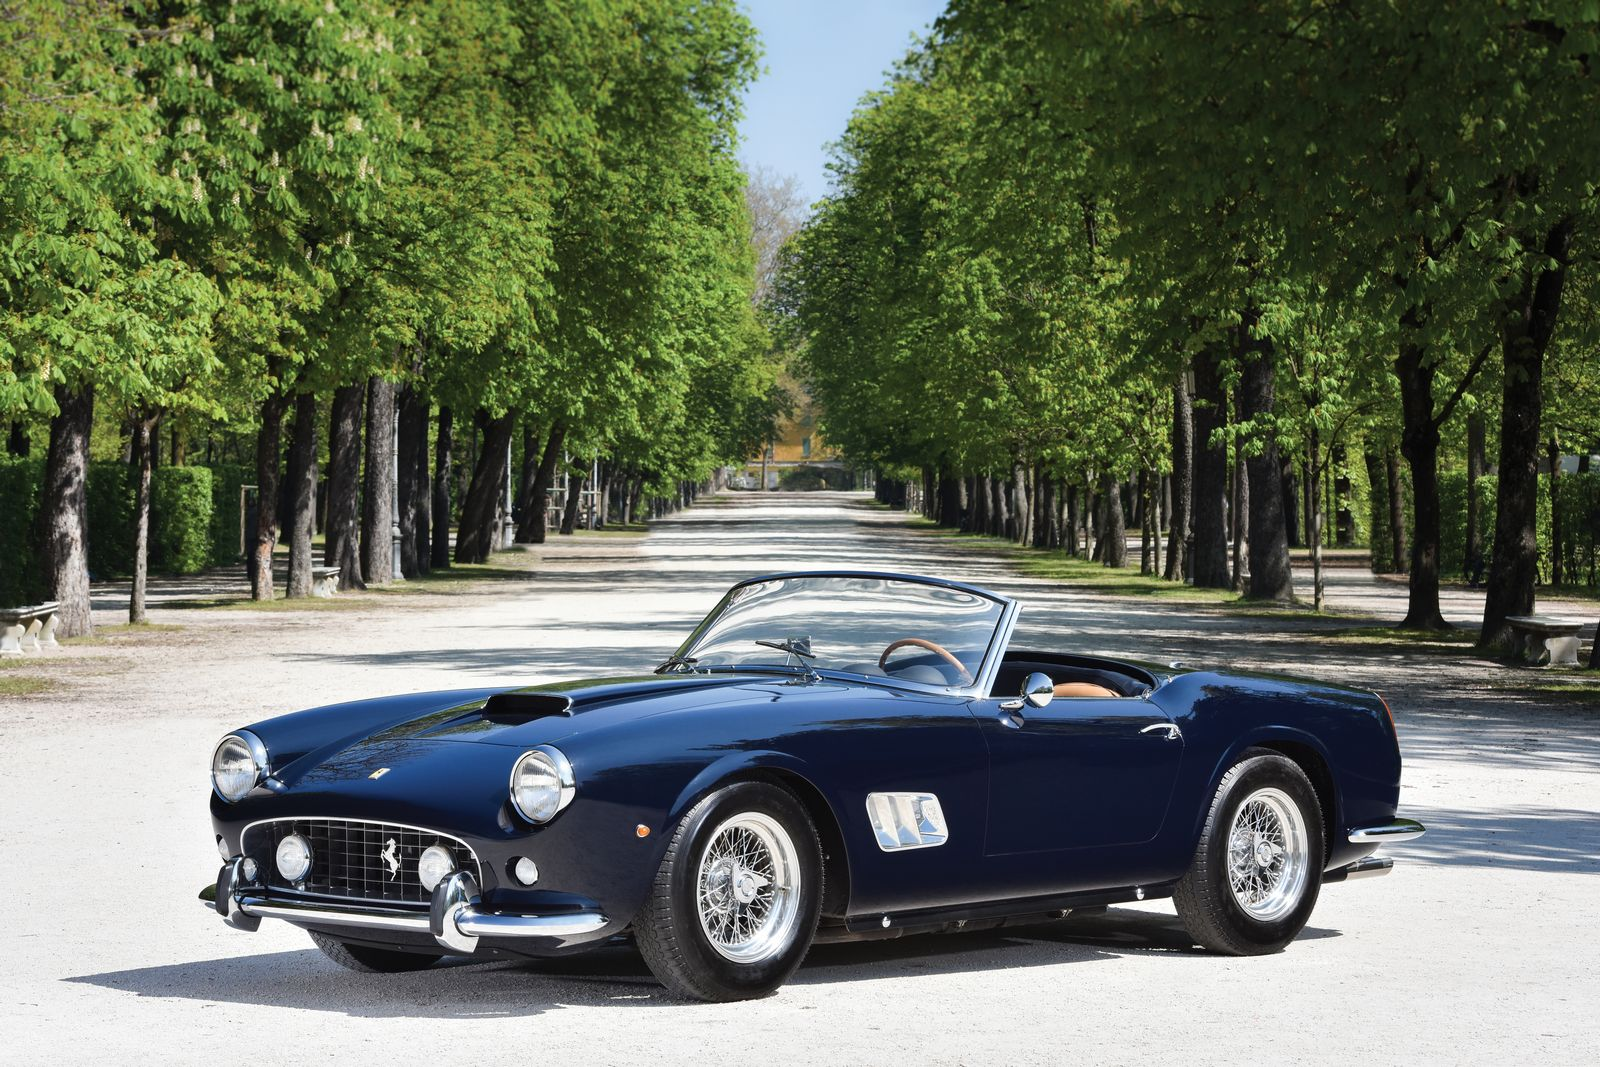 1961 ferrari 250 gt swb california spider to be auctioned by rm sotheby 39 s gtspirit. Black Bedroom Furniture Sets. Home Design Ideas